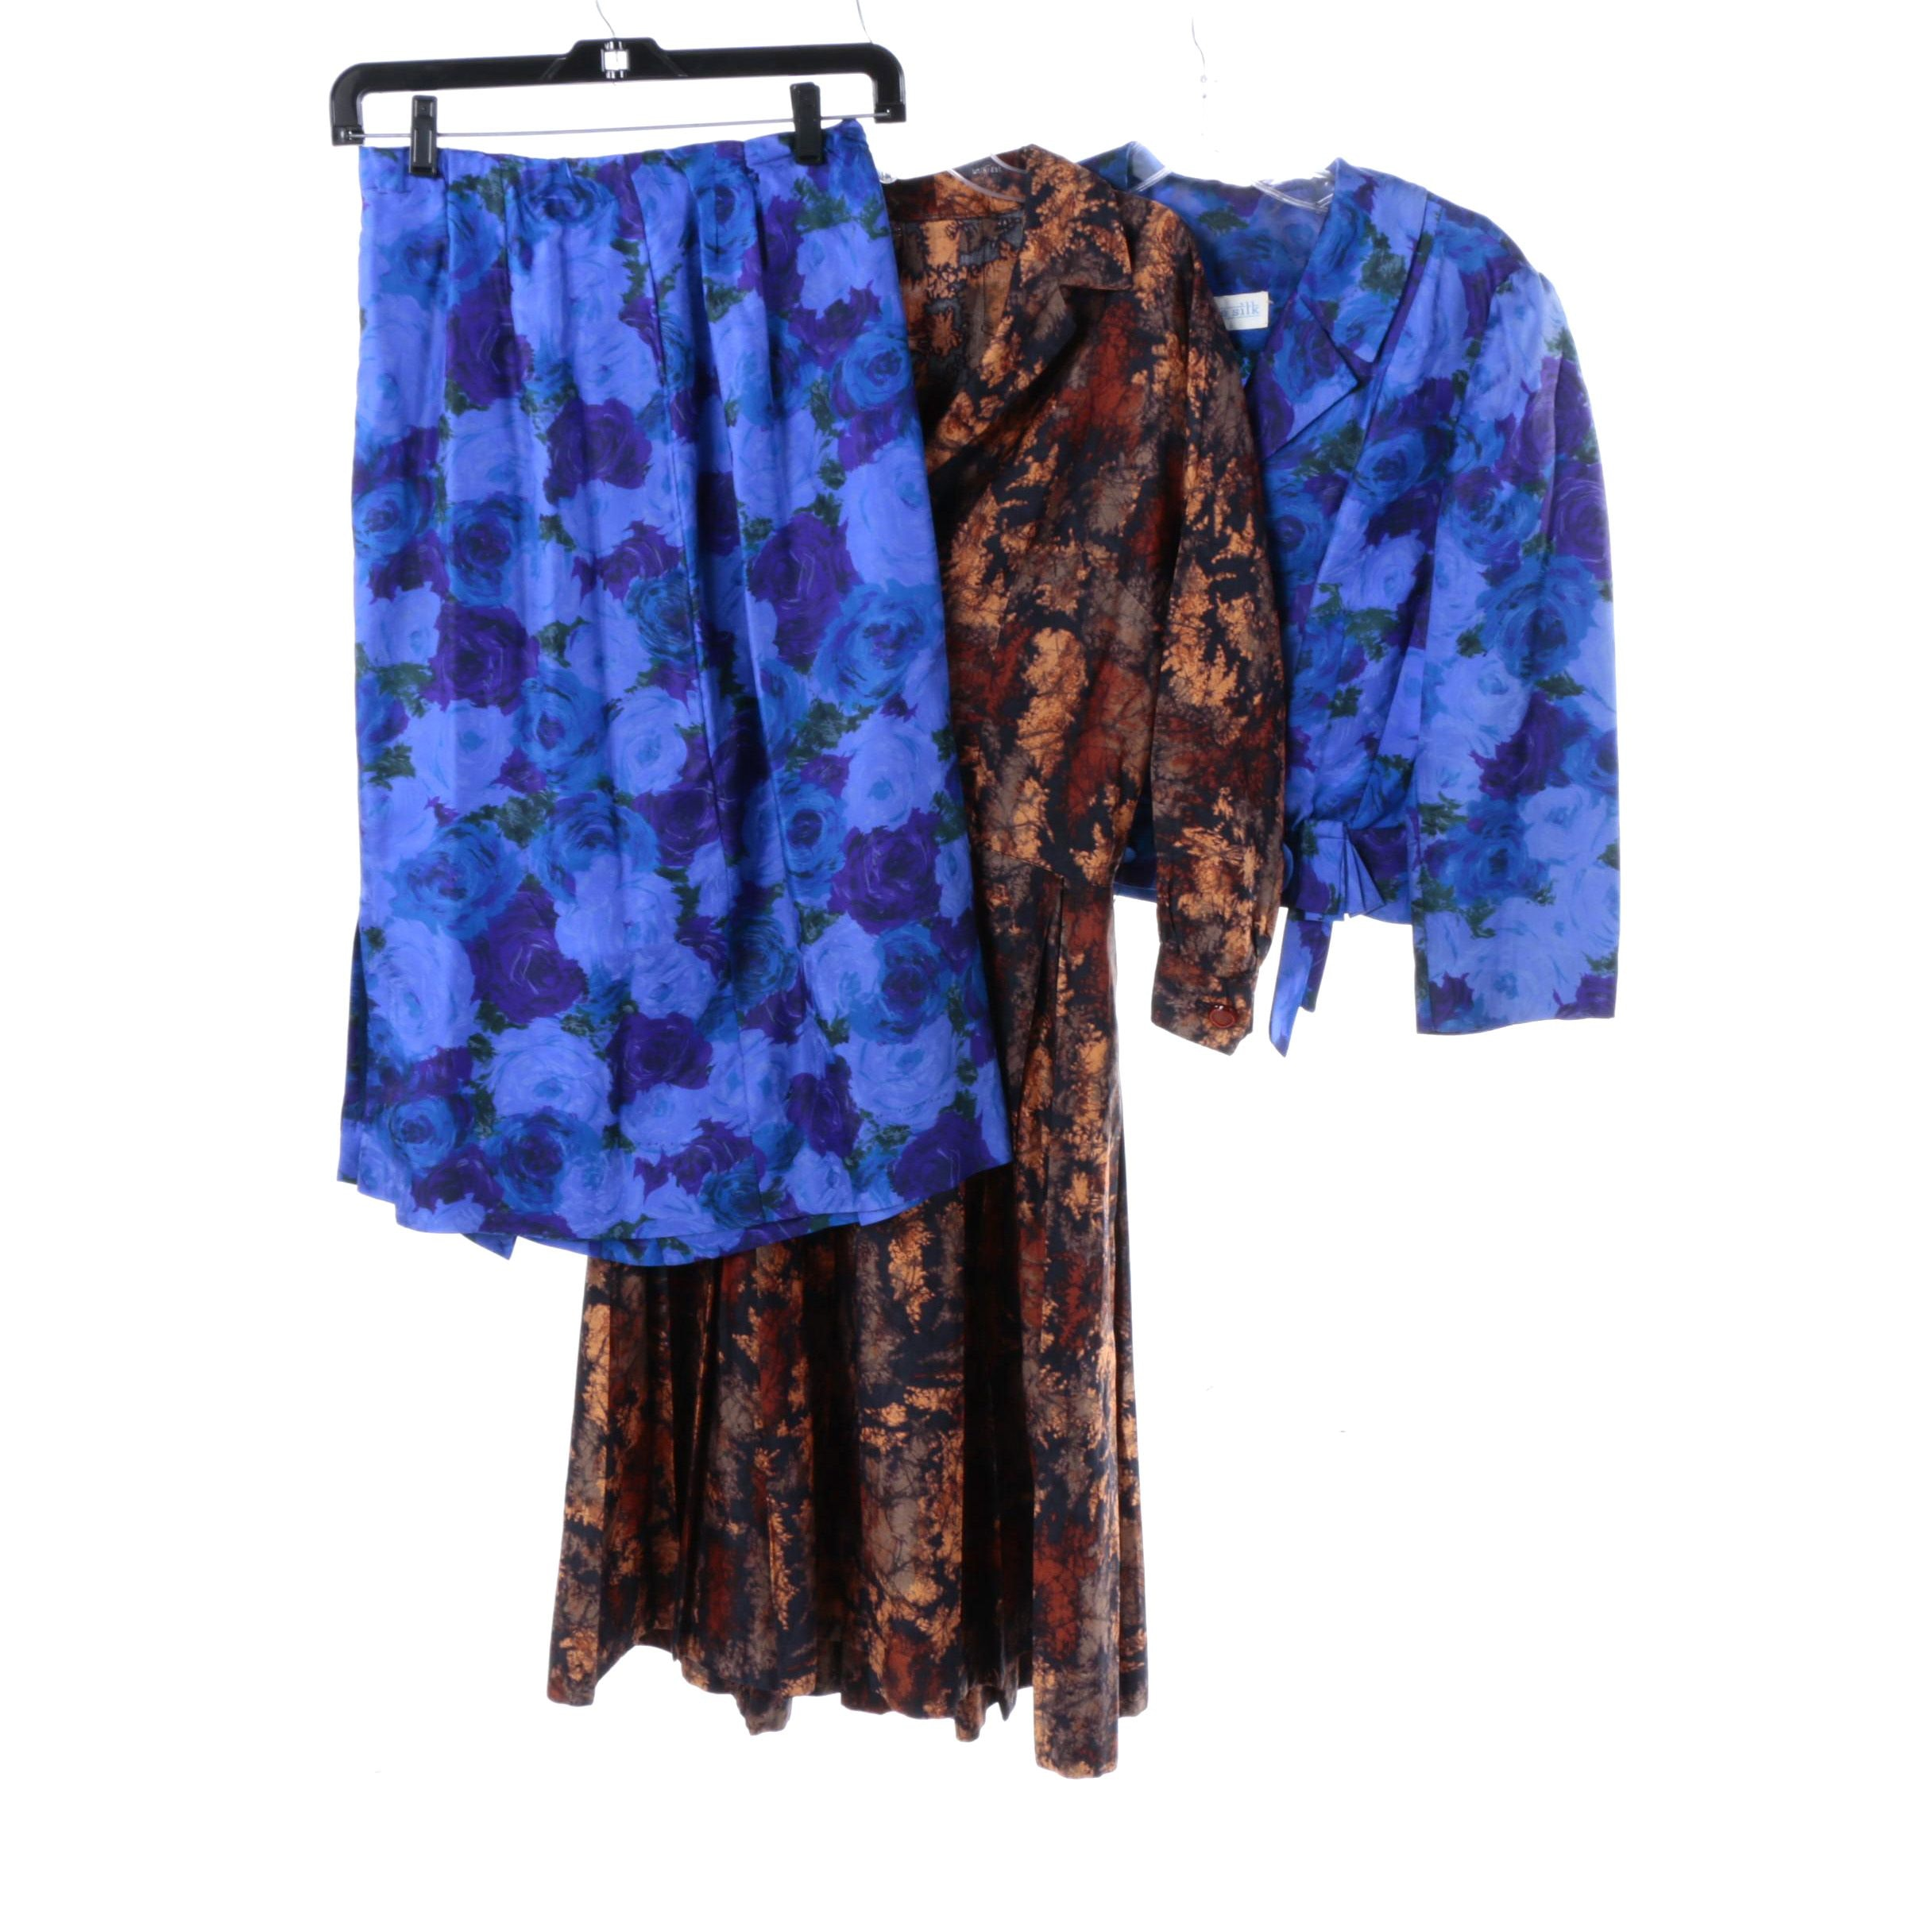 1950s Floral Amber Dress and Cobalt Blue Silk Skirt Suit